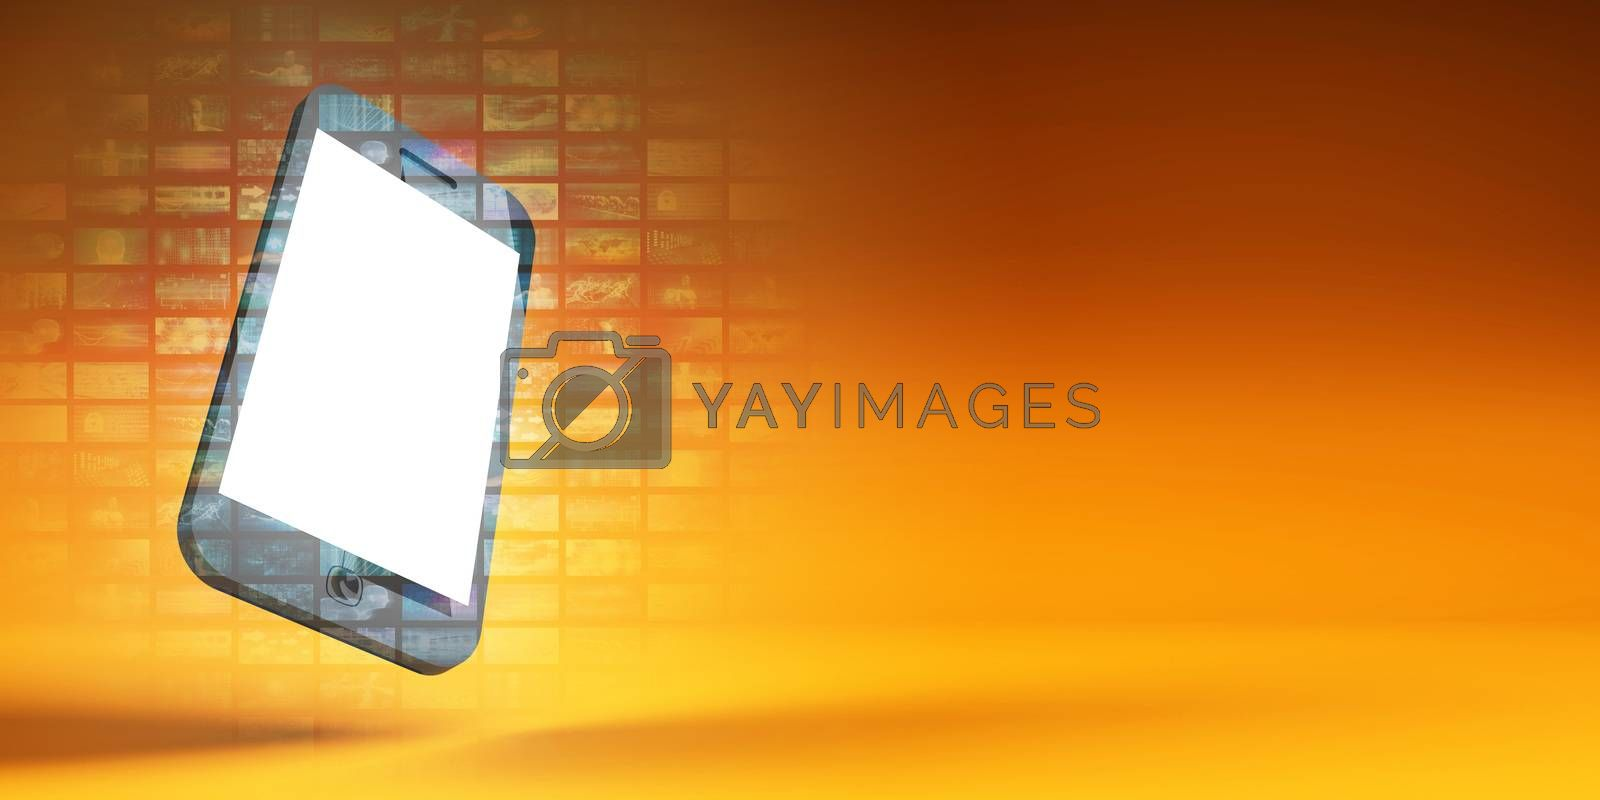 Mobile Phone App Download Now Exciting Background